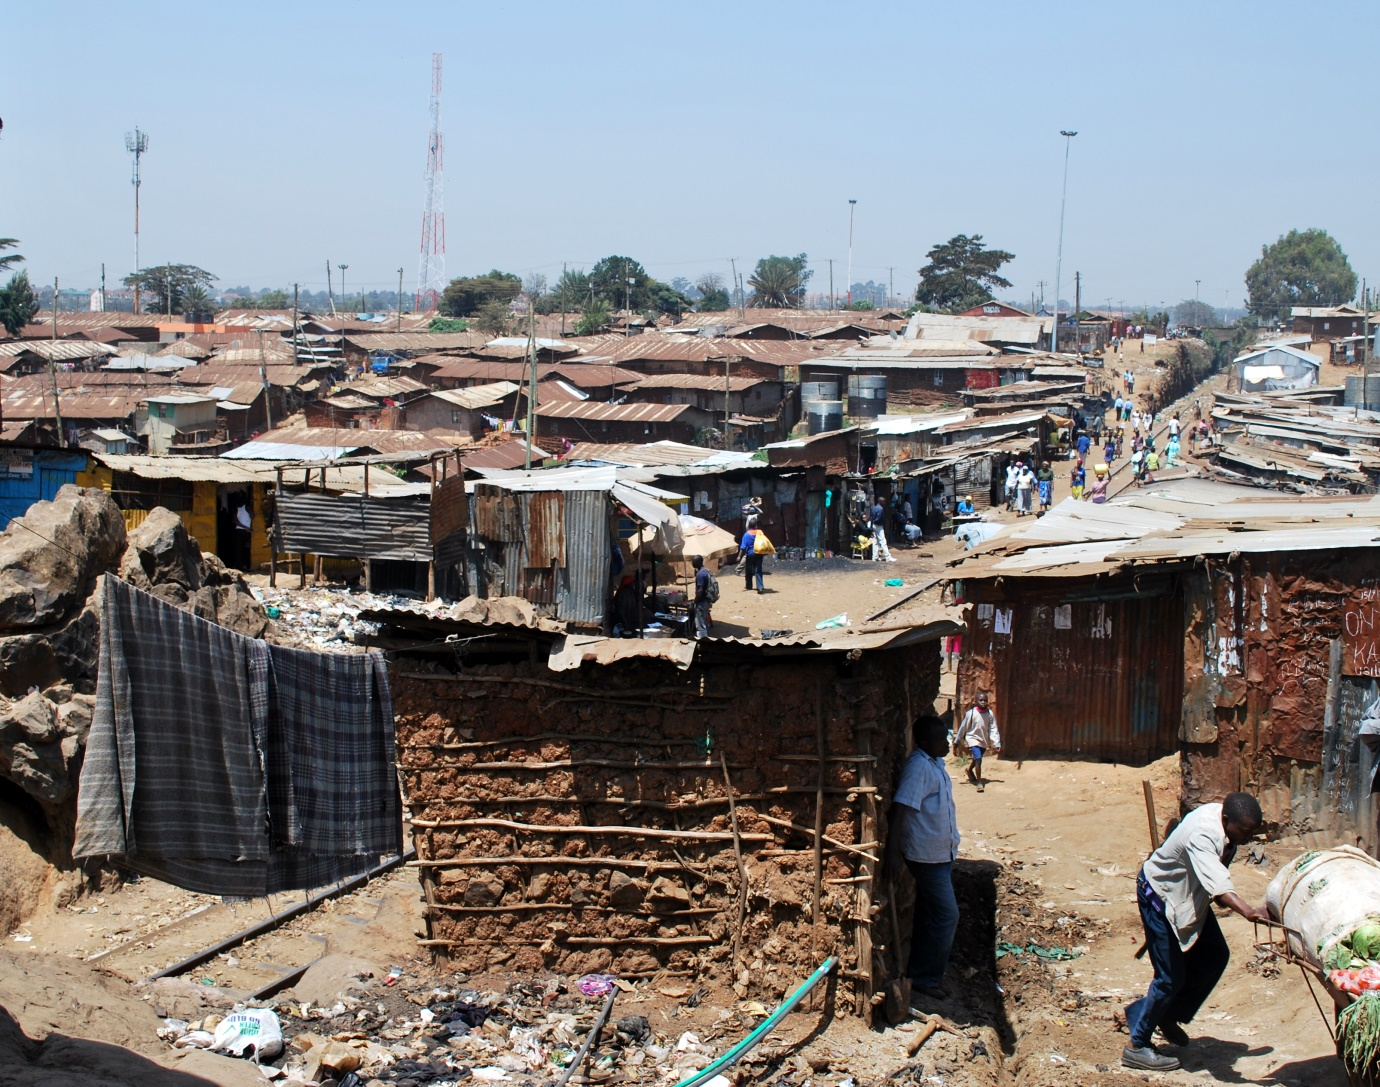 Why the number of poor is increasing despite growth in Africa